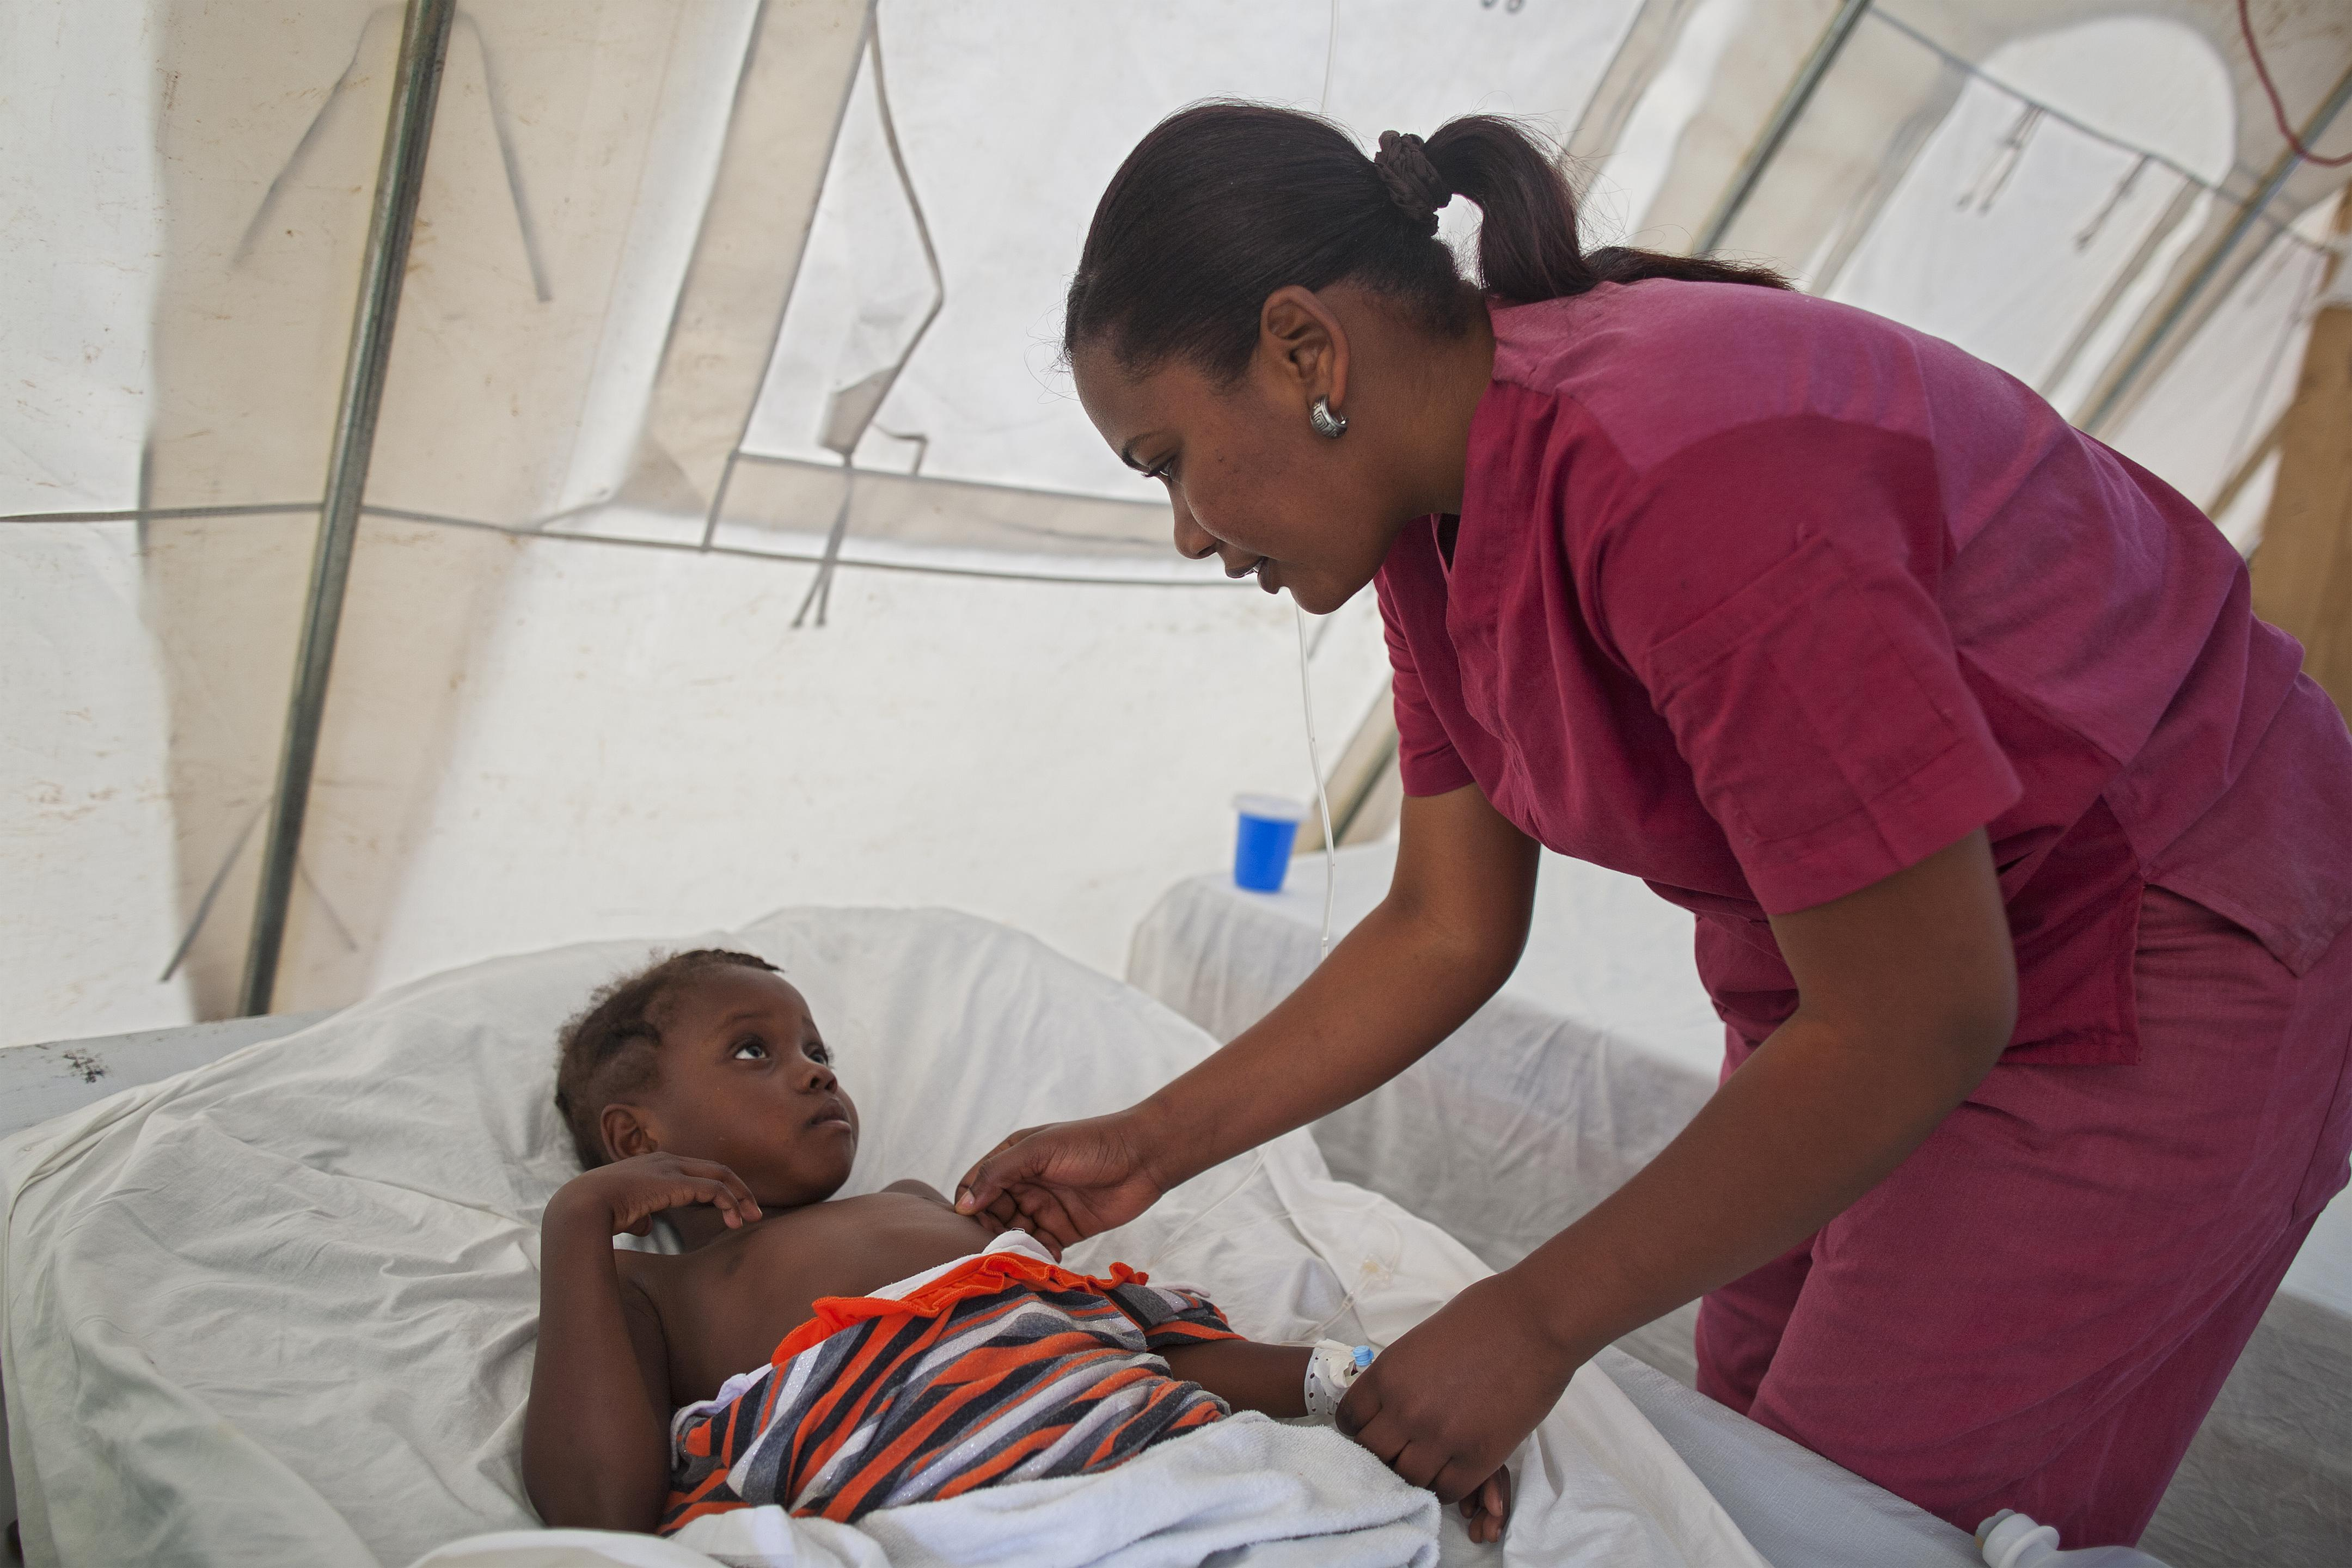 Rose Luzette Charles, a nurse at a Cholera Treatment Center, checks on Widelene Philistin, 7, who is recovering from cholera. Photo credits: ECHO/Care/Evelyn Hockstein